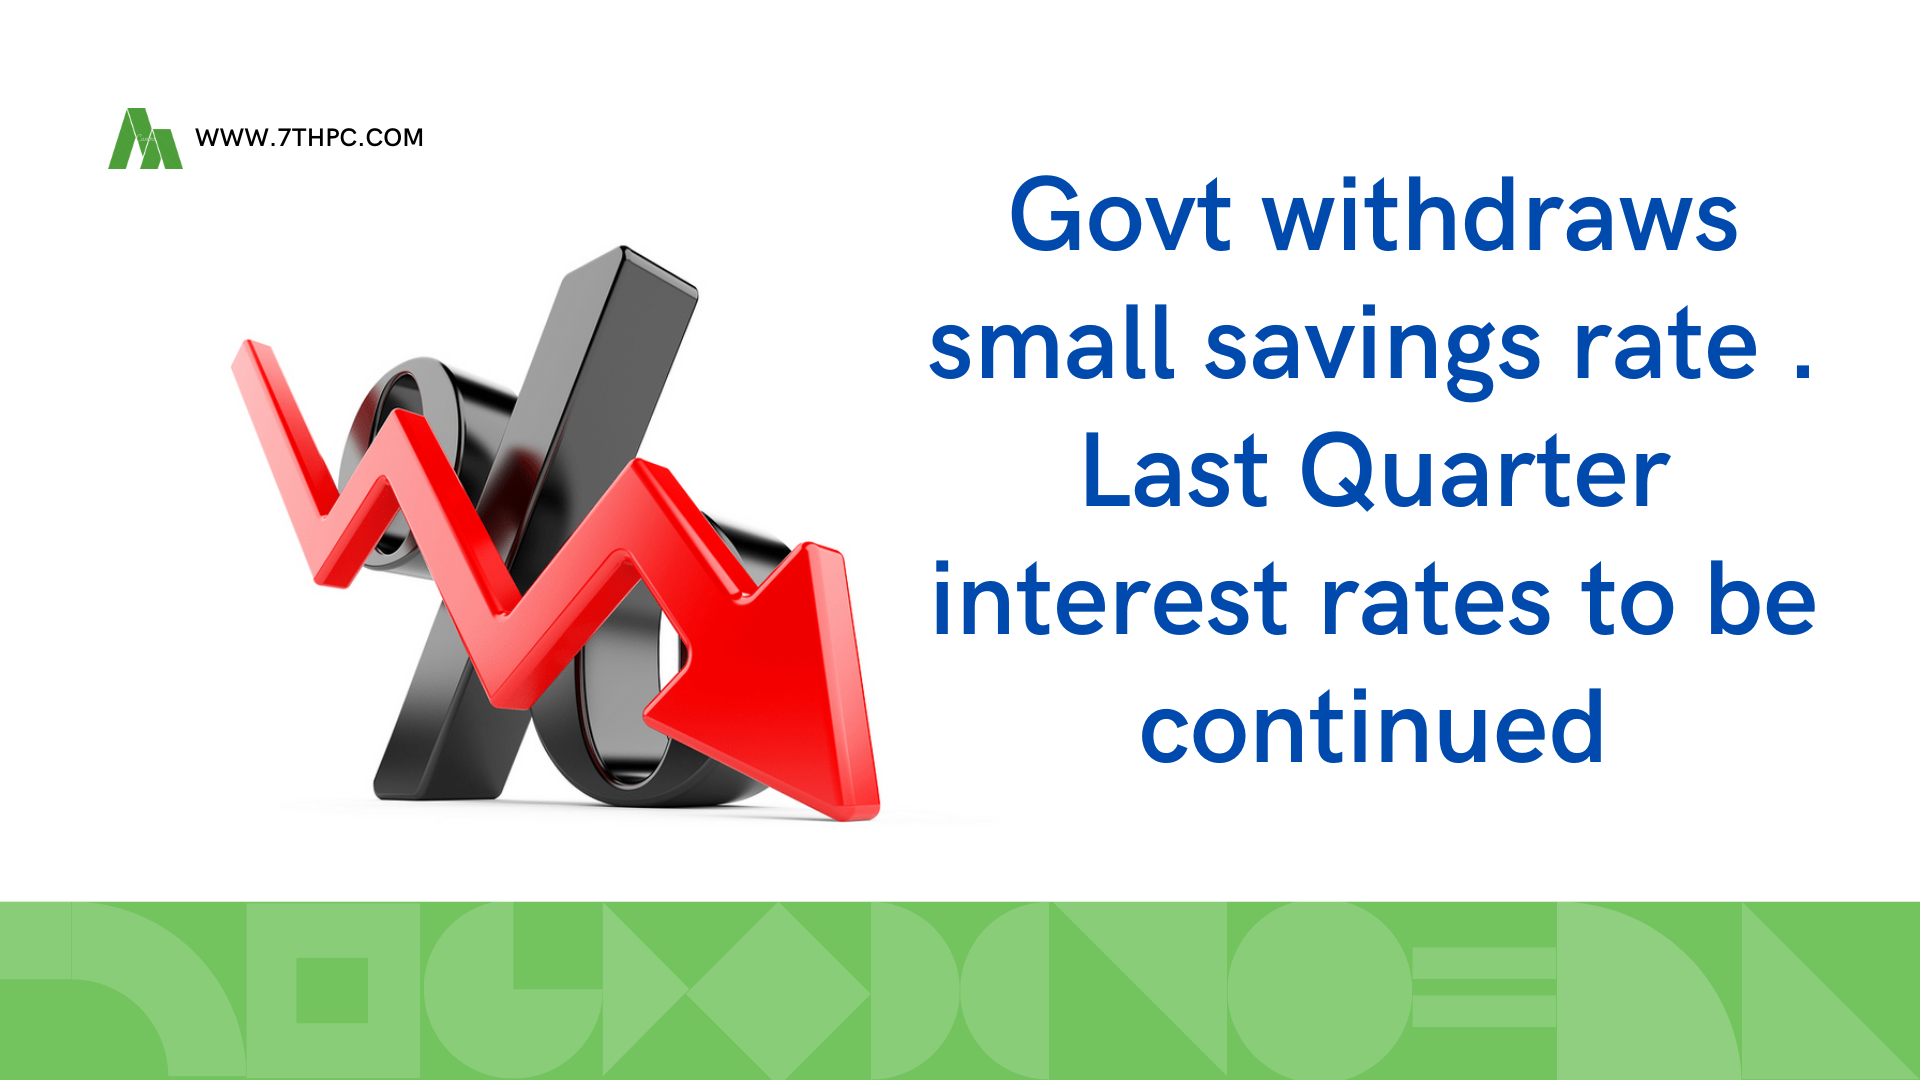 Govt withdraws small savings rate . Last Quarter interest rates to be continued